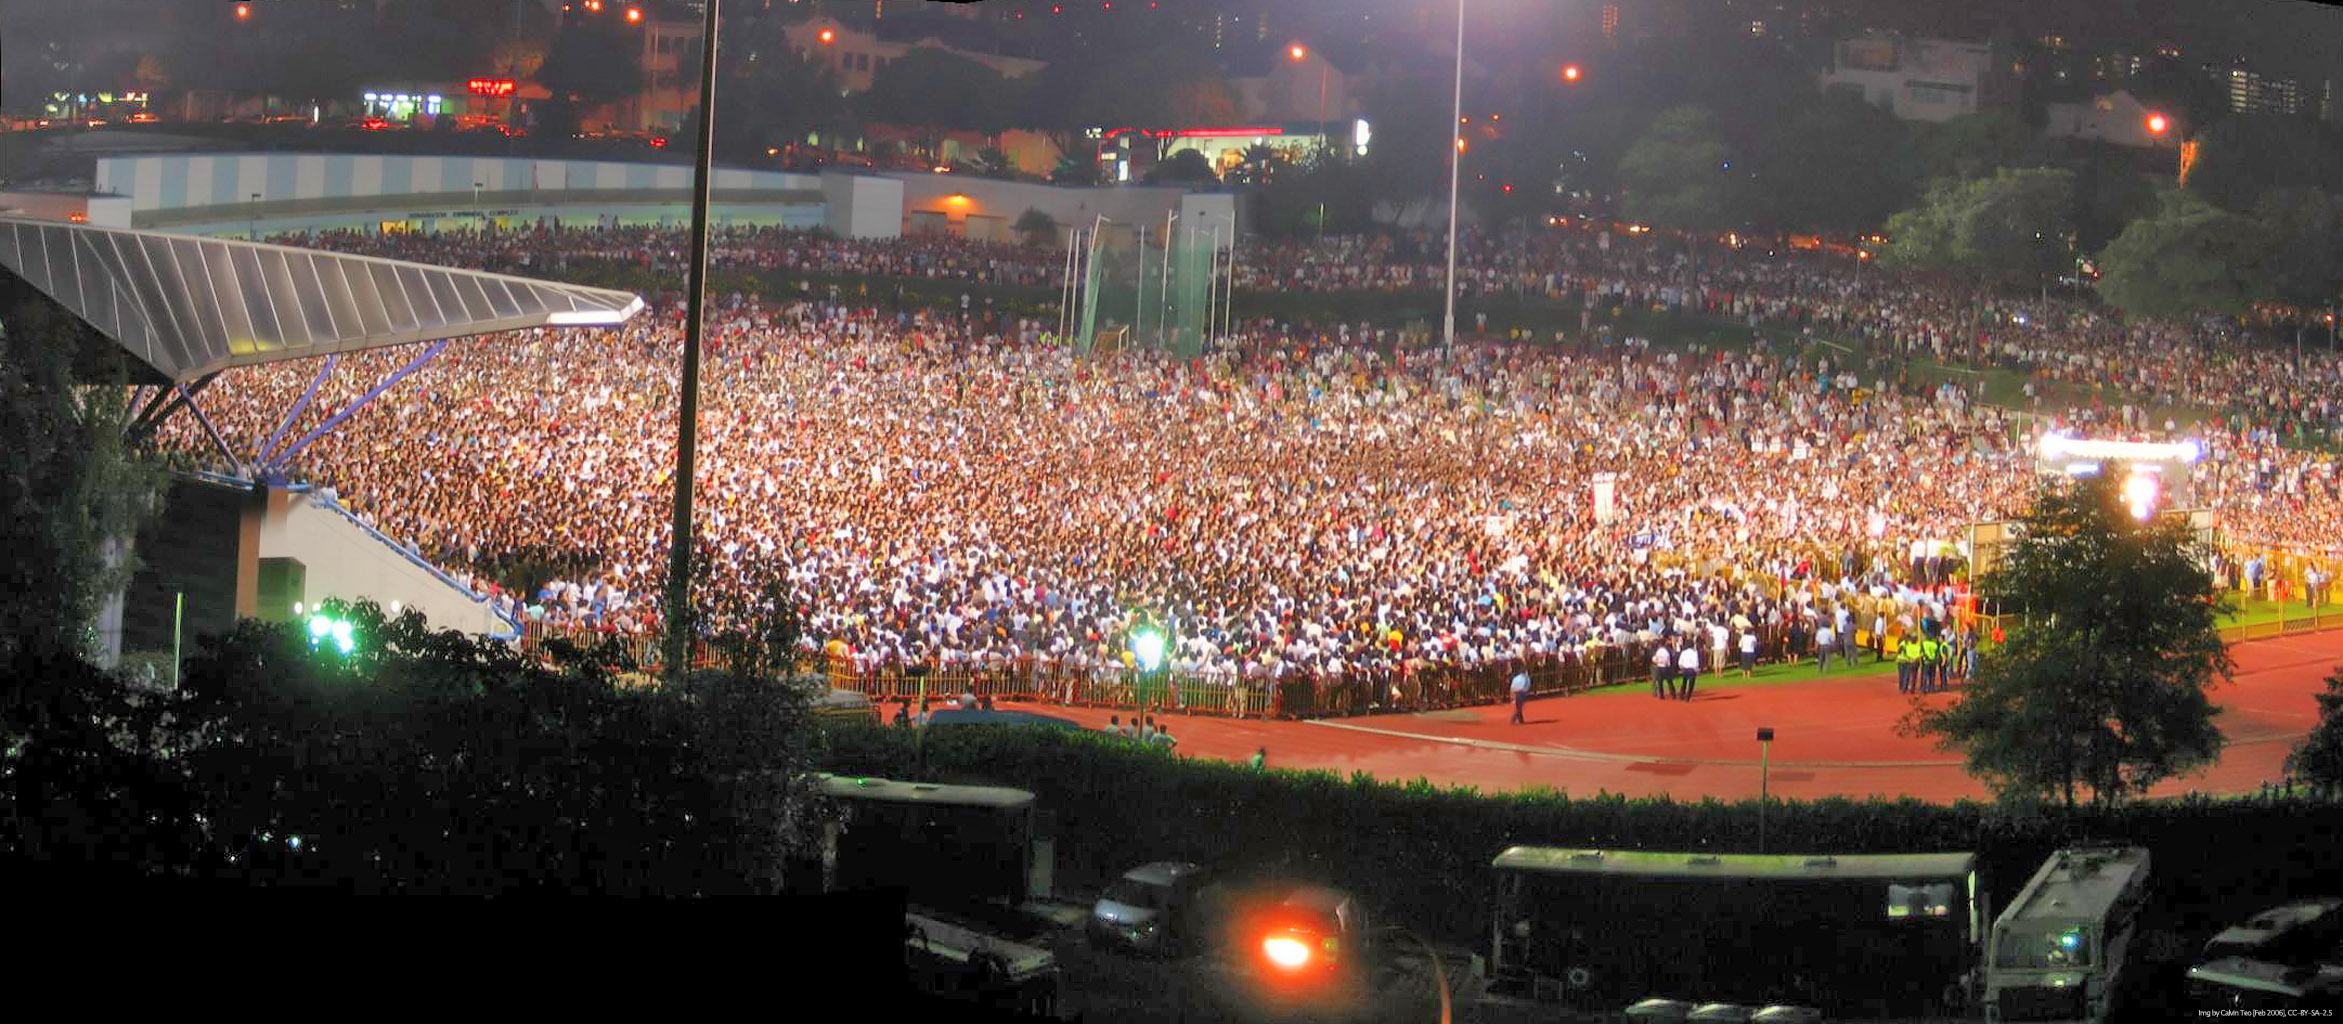 A Workers Party rally in Singapore.